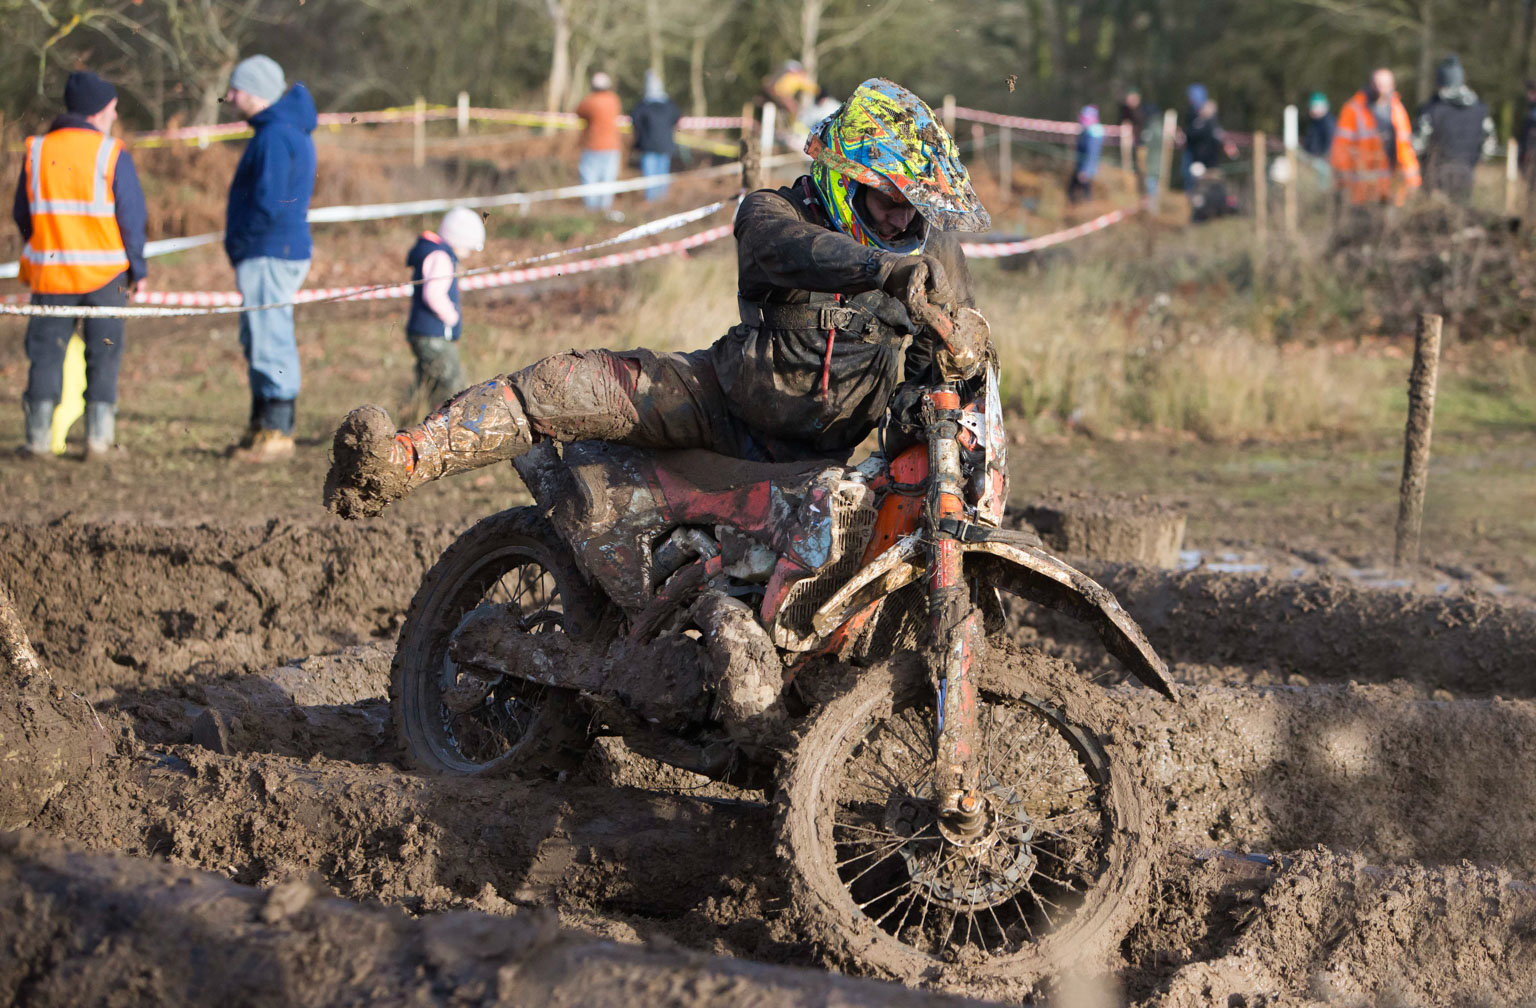 Stephen Lander struggles in the mud